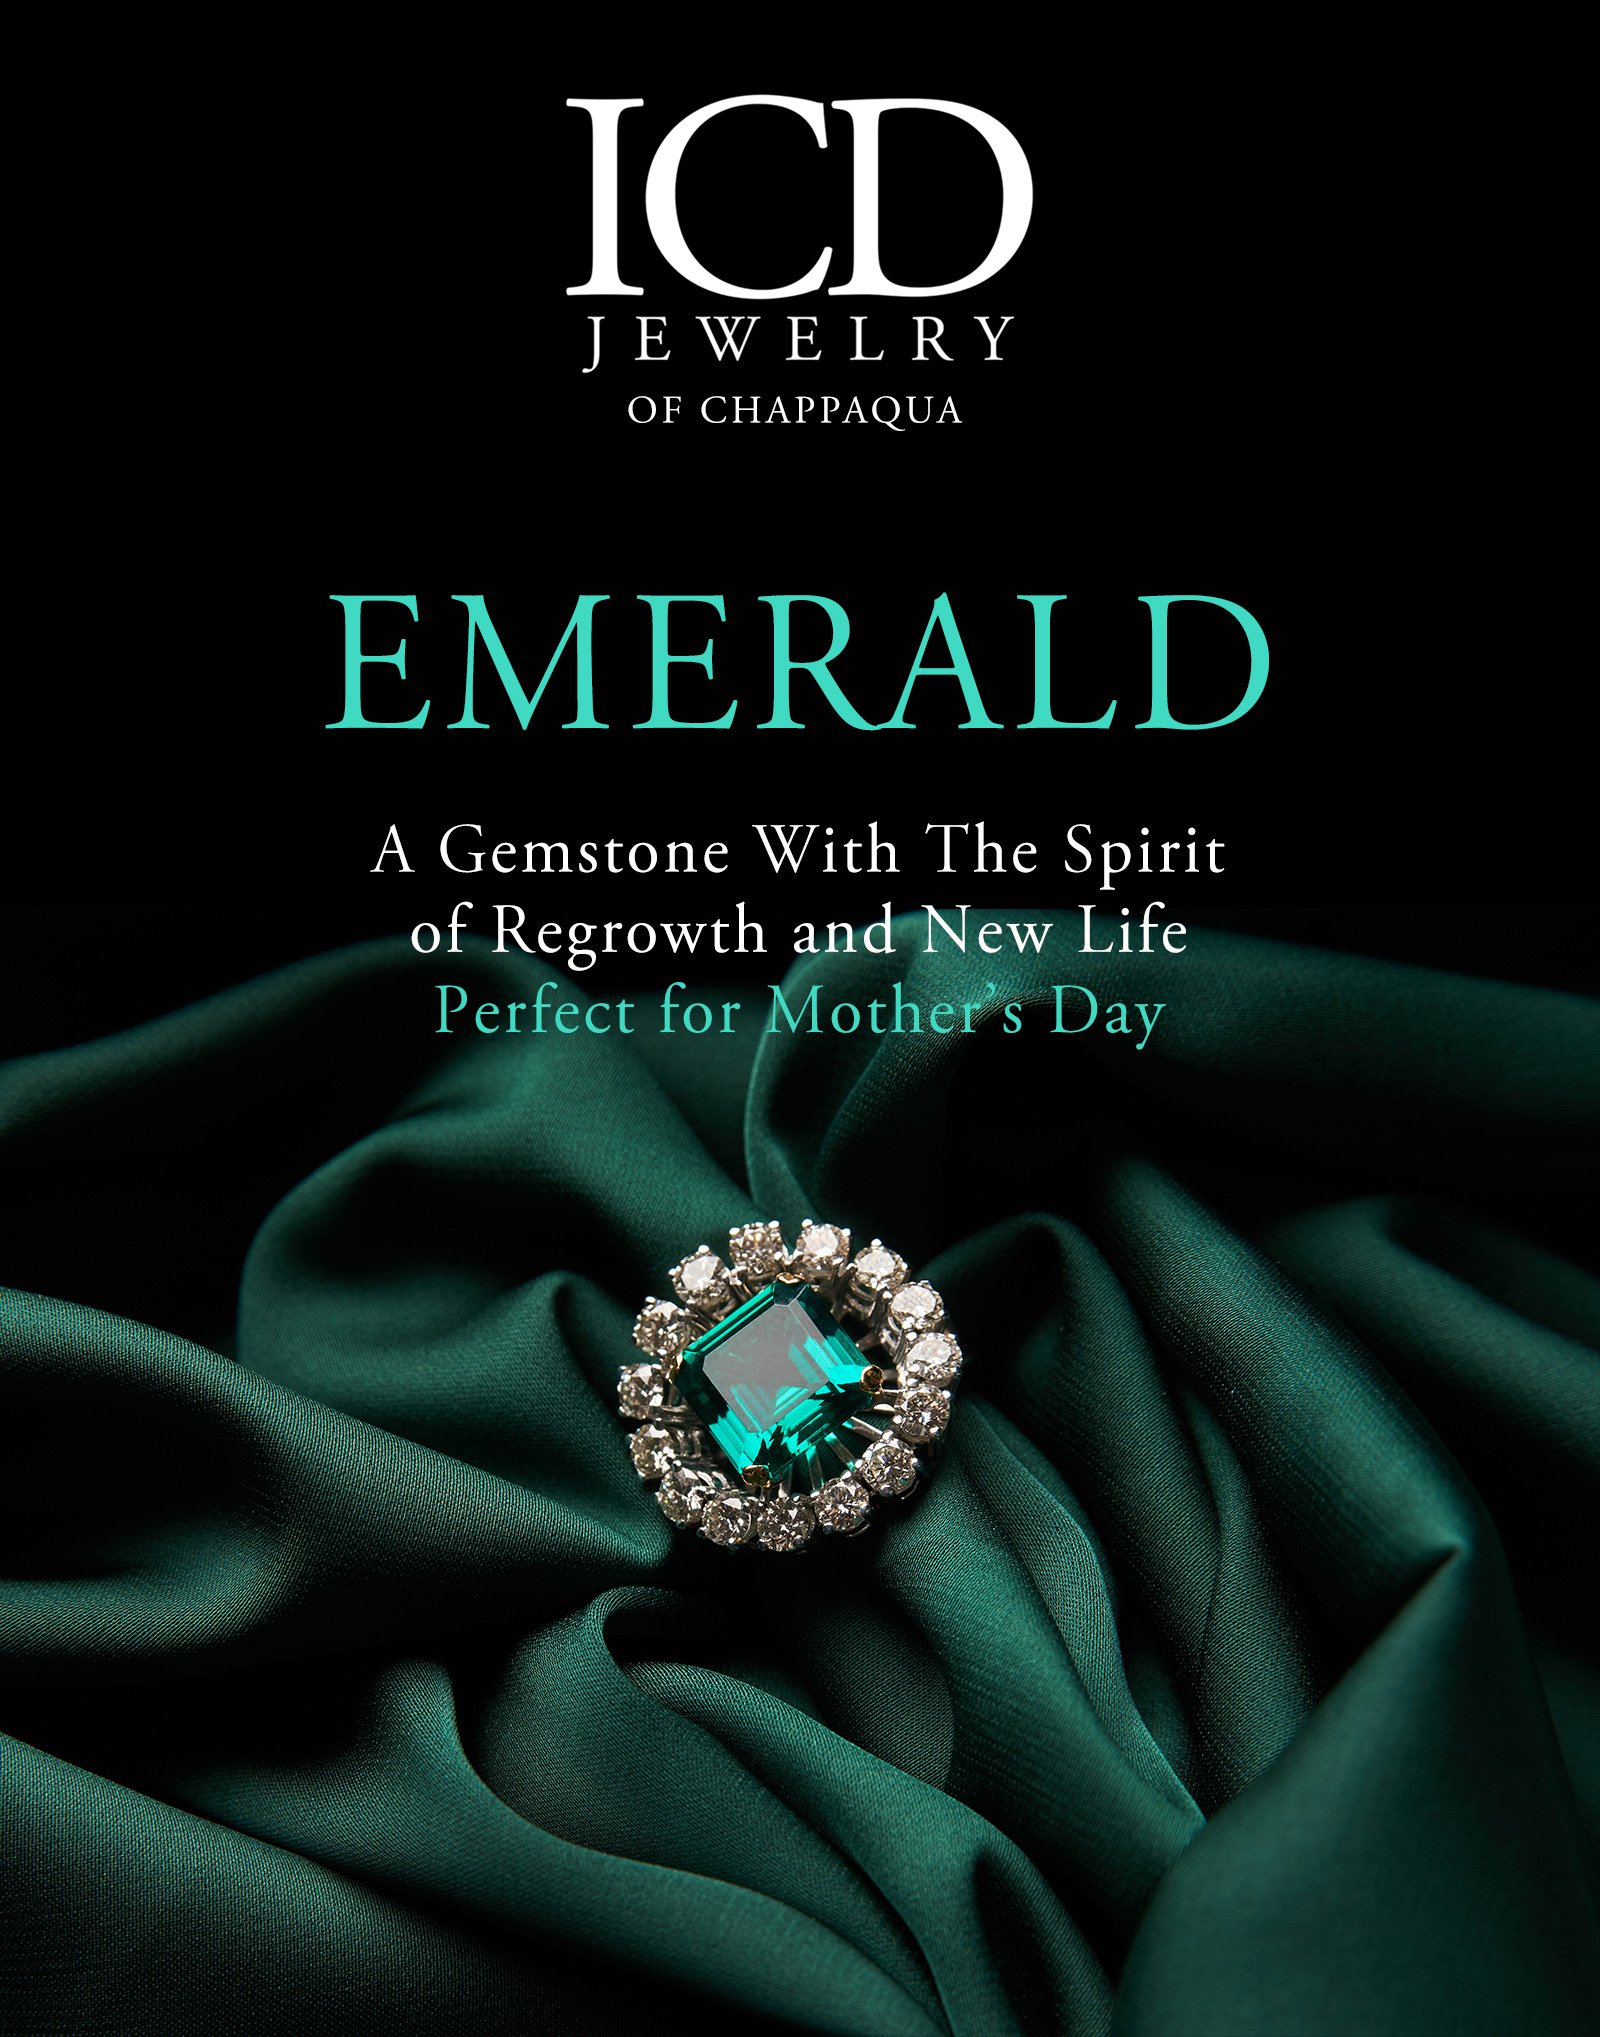 Emeralds: For May and Mother's Day